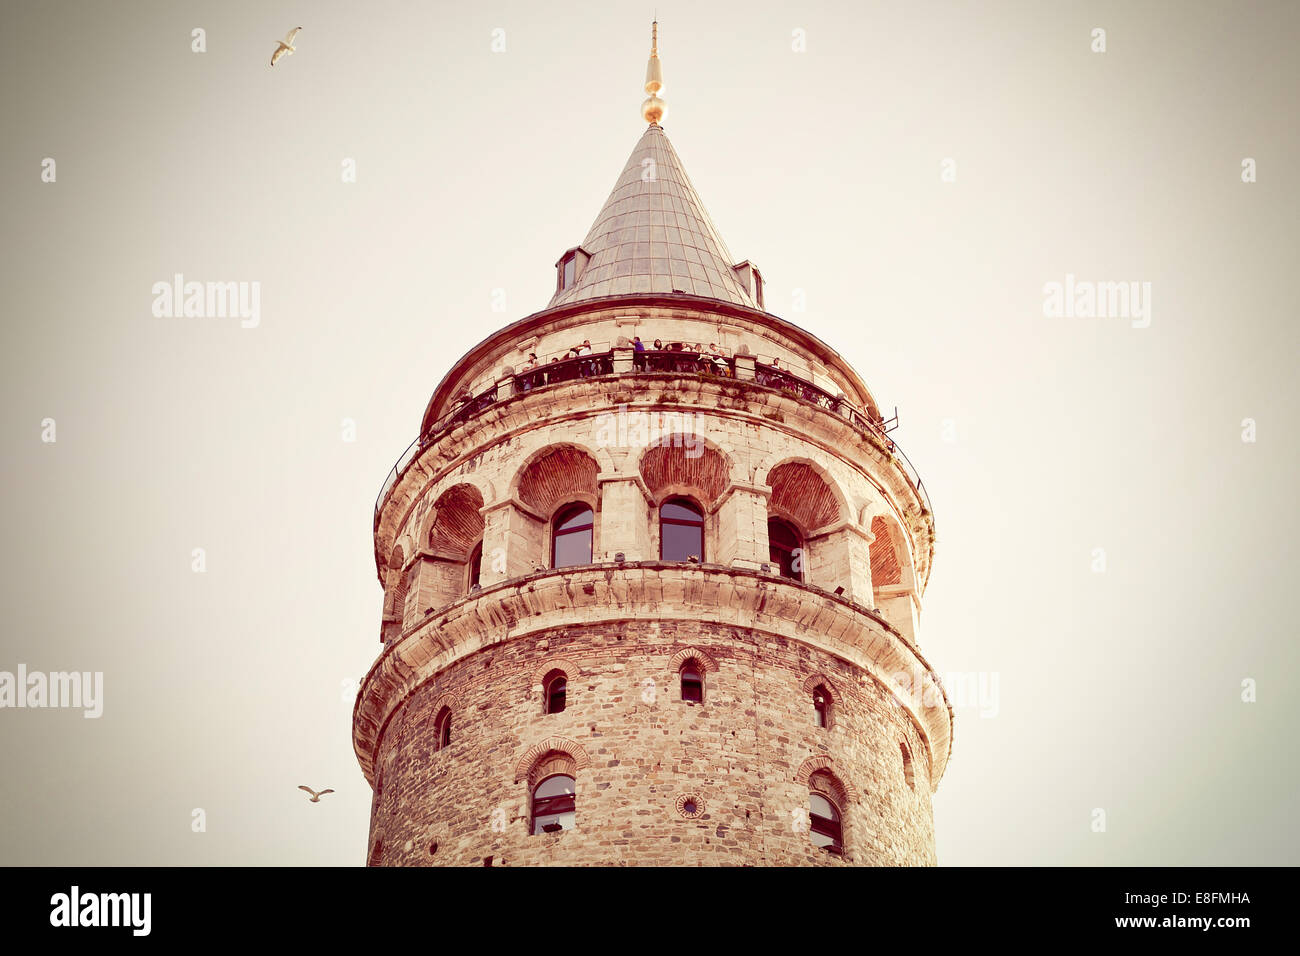 Turkey, Istanbul, Low angle view of Galata Tower - Stock Image